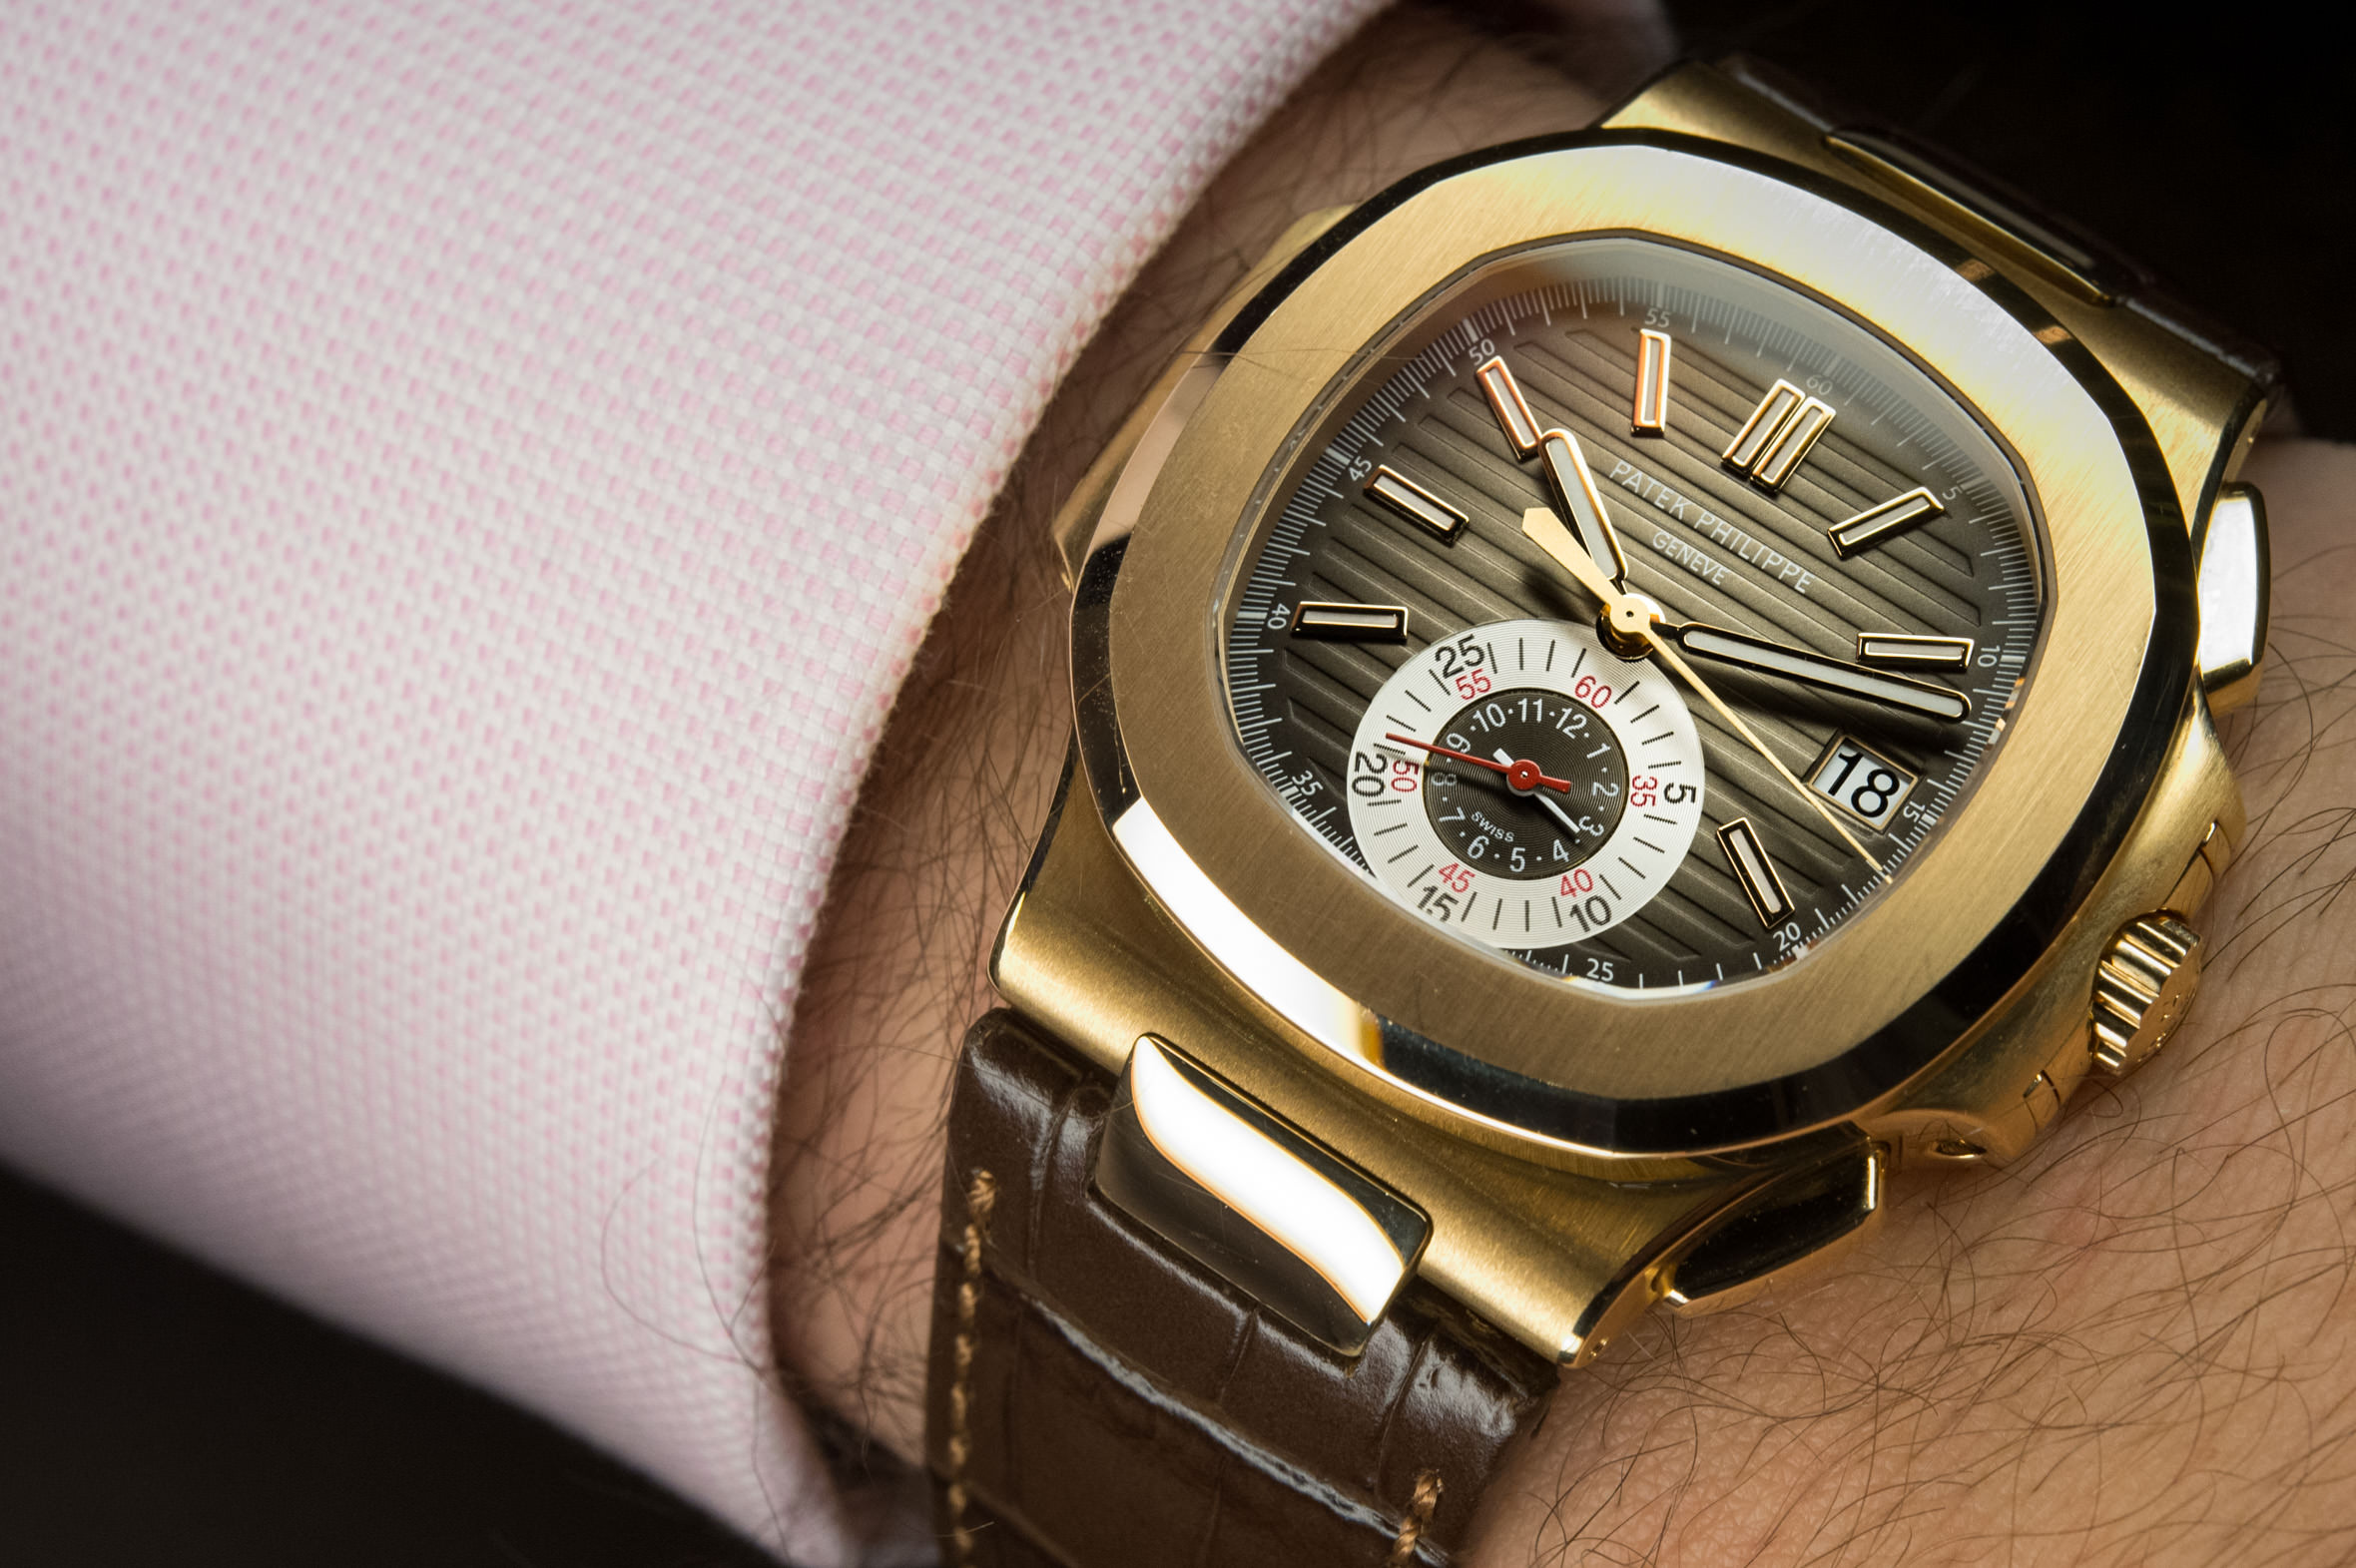 P Philippe Watch Patek Philippe Nautilus Is The Ultimate Sports Watch Review